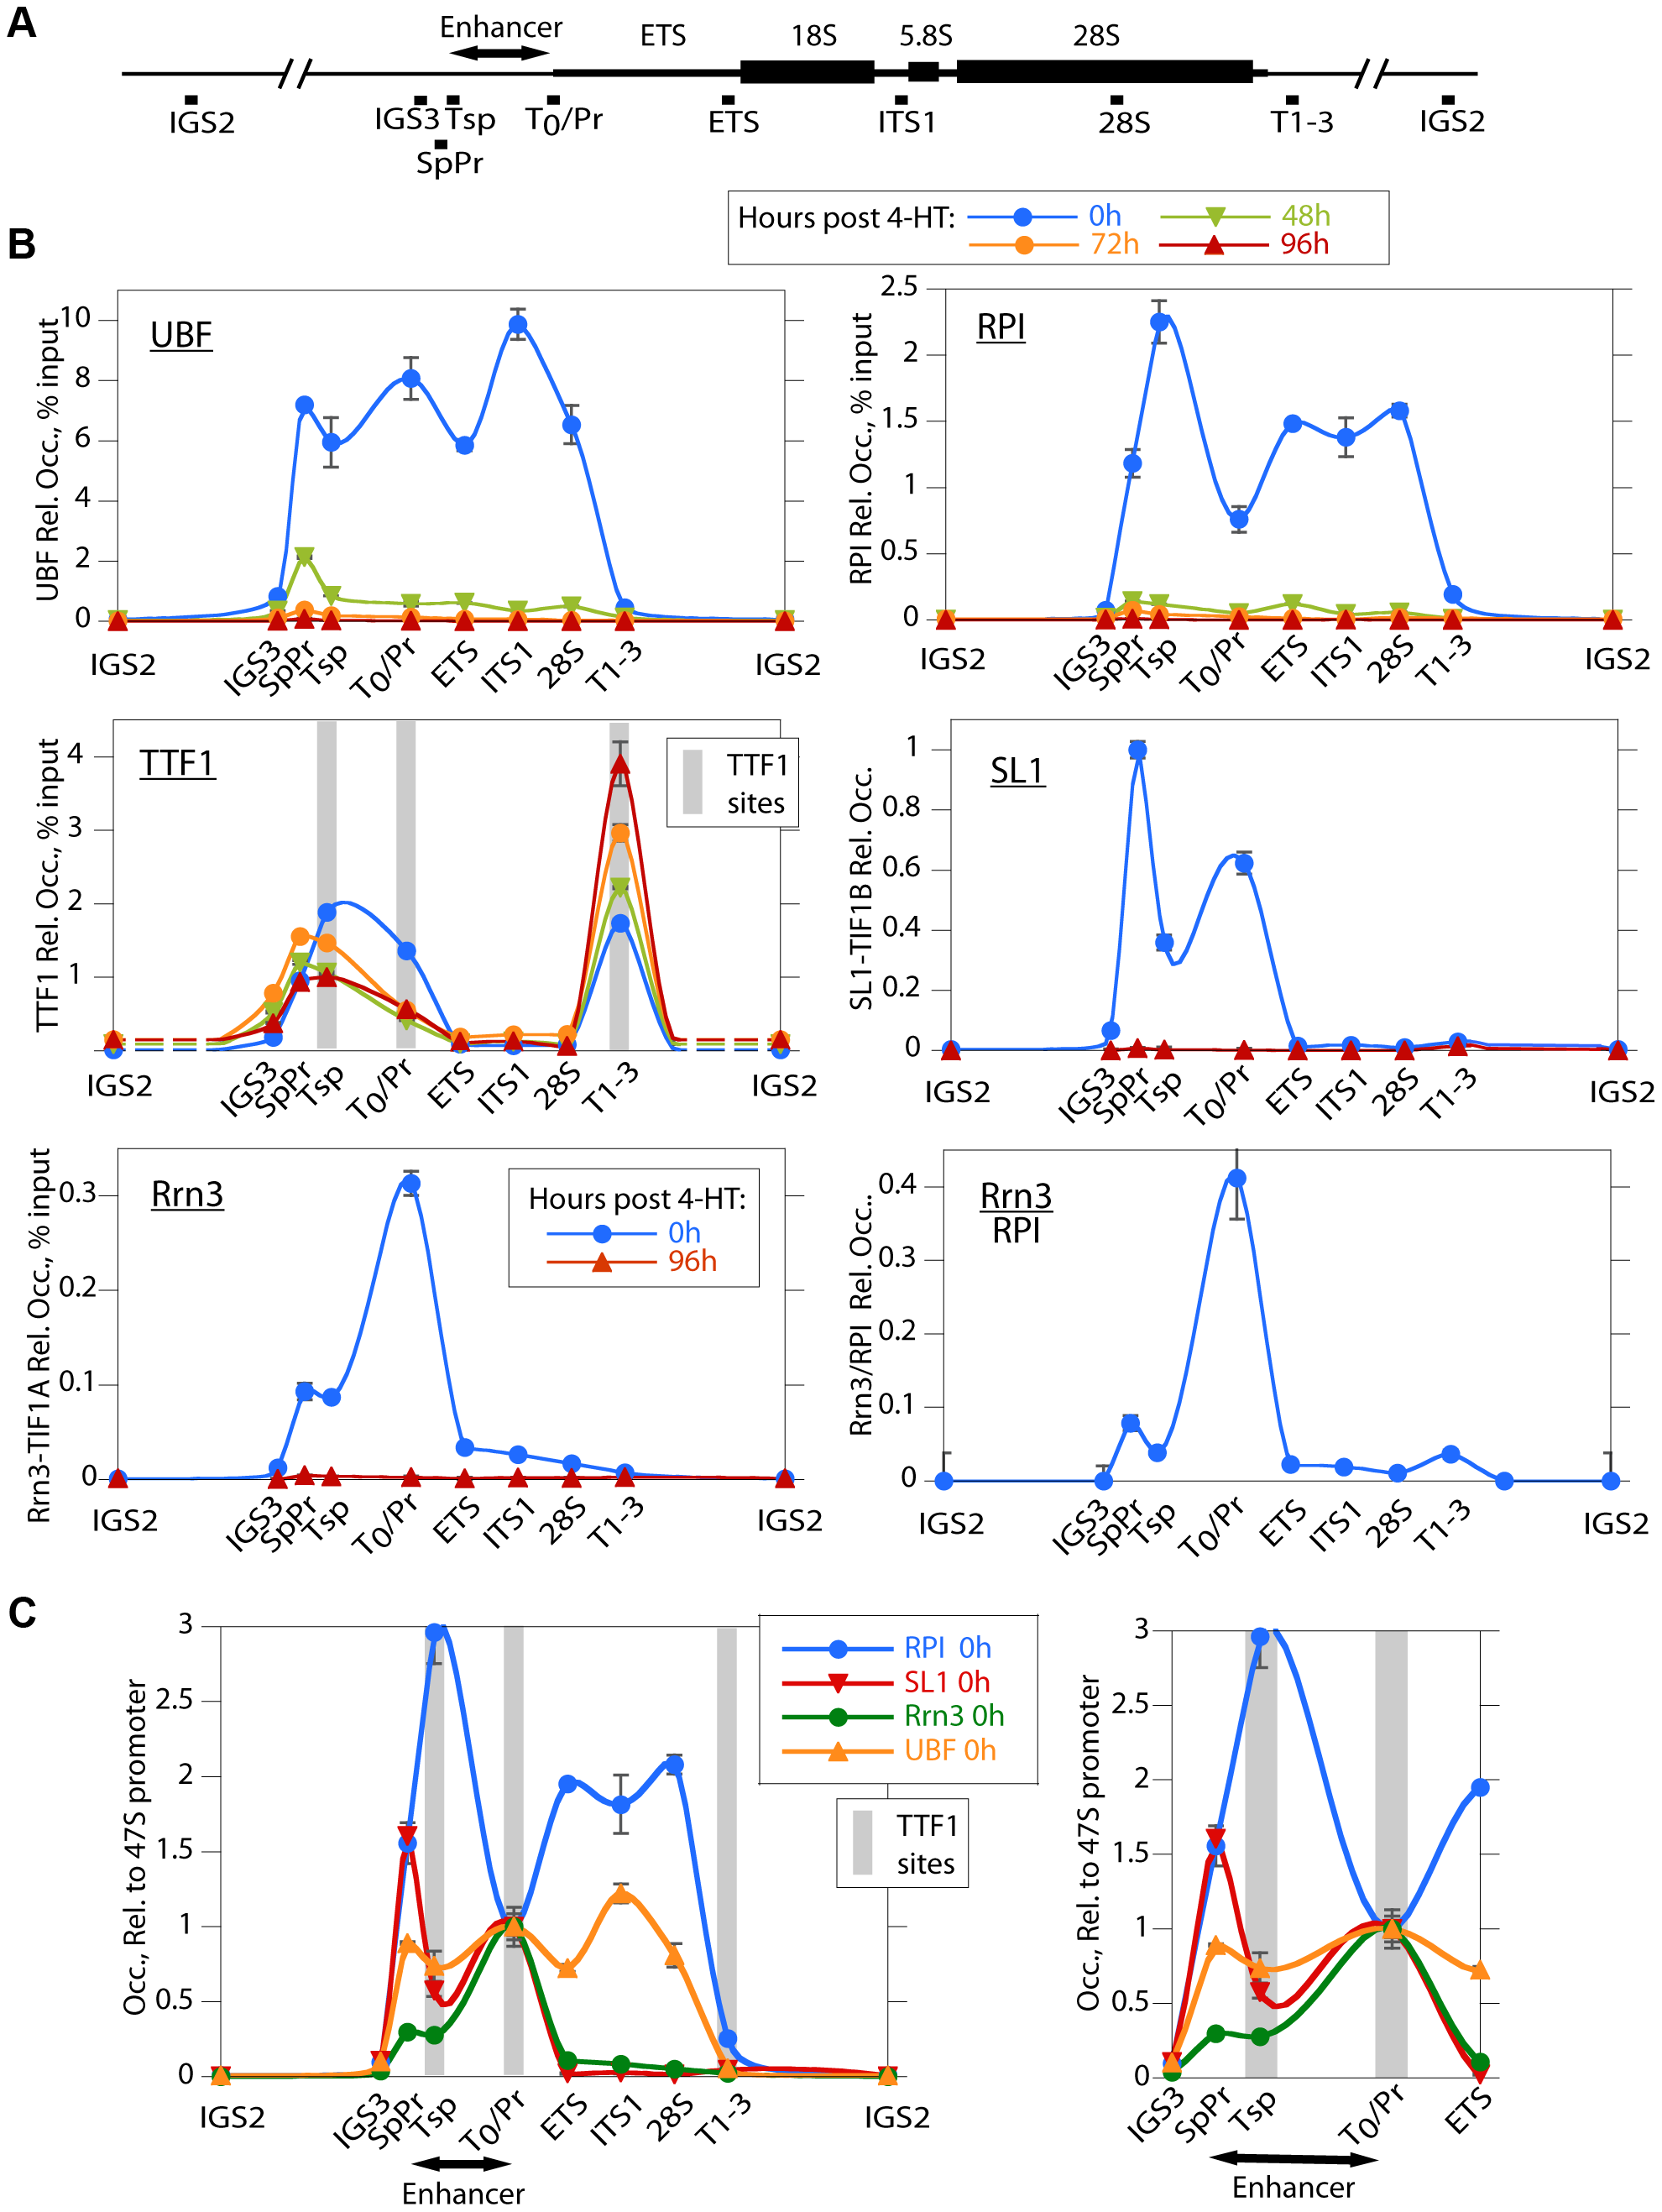 UBF elimination causes release of the RPI and all RPI initiation factors, but not of the termination factor TTF1.